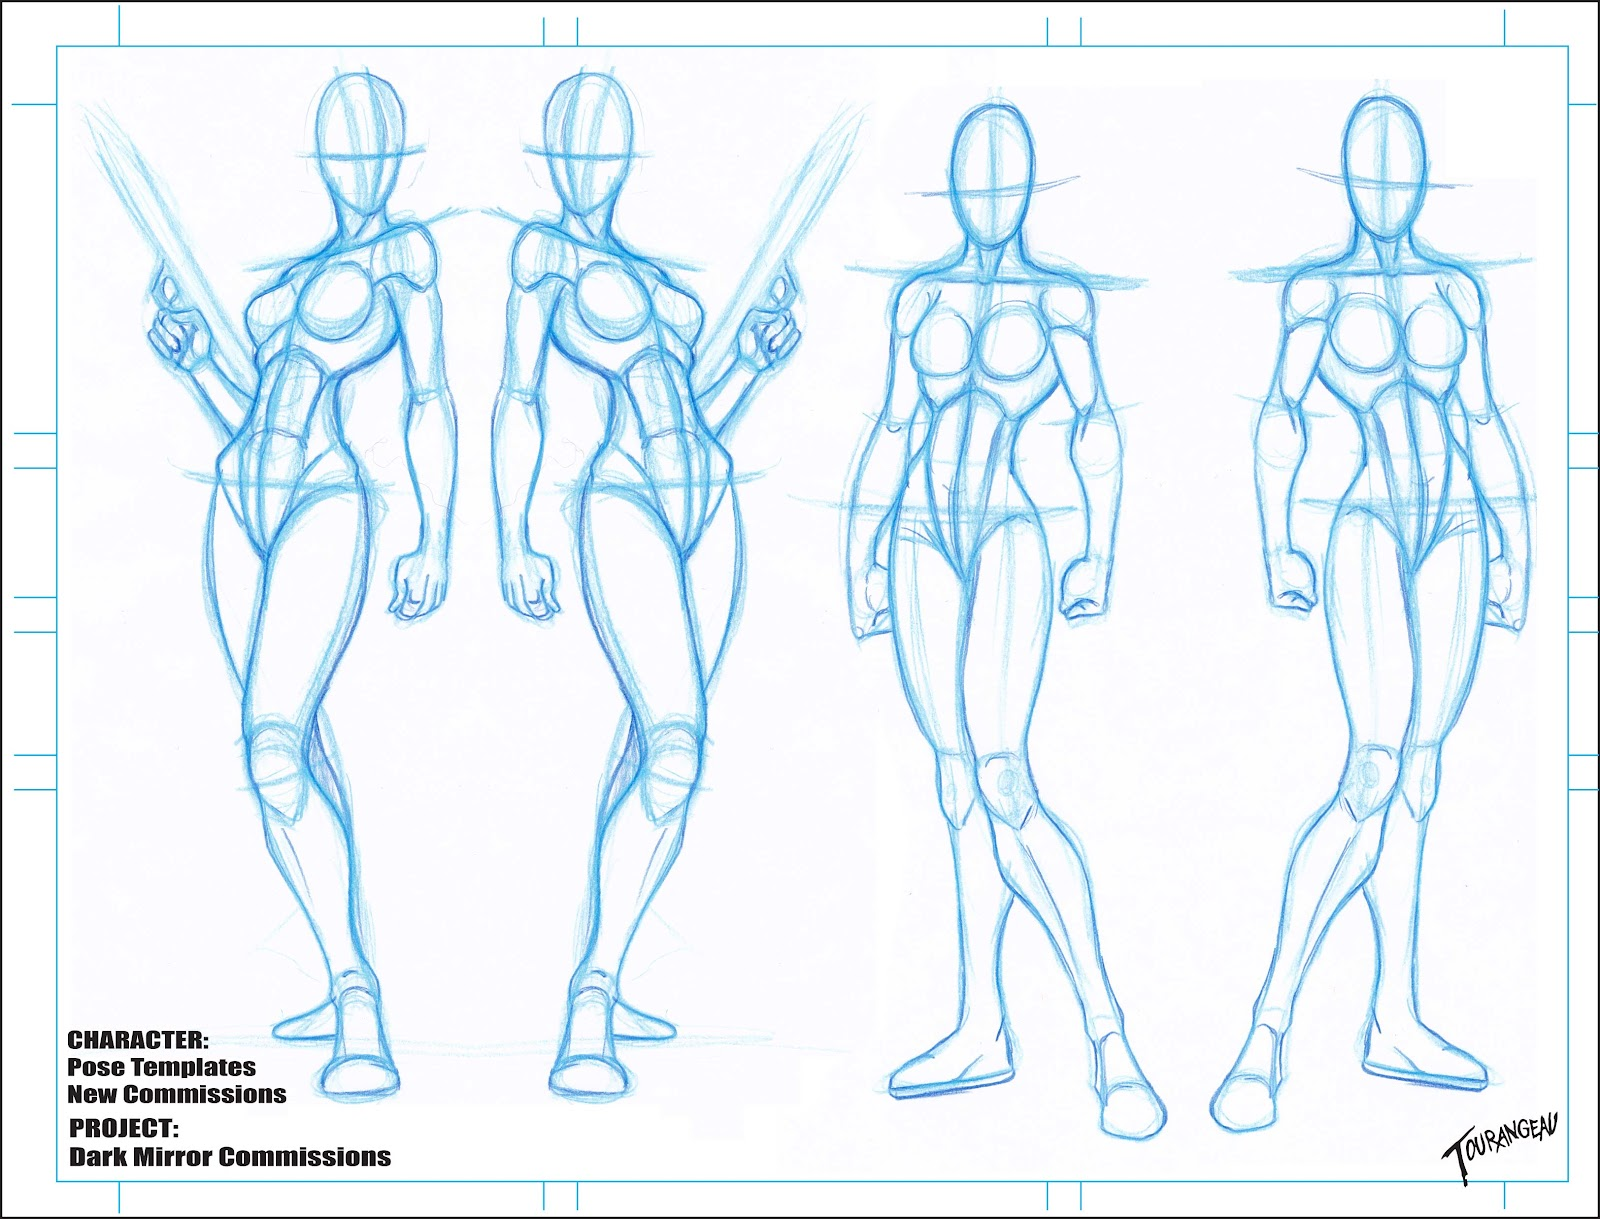 Cartoon Character Design Templates : The art of sean tourangeau new character blanks